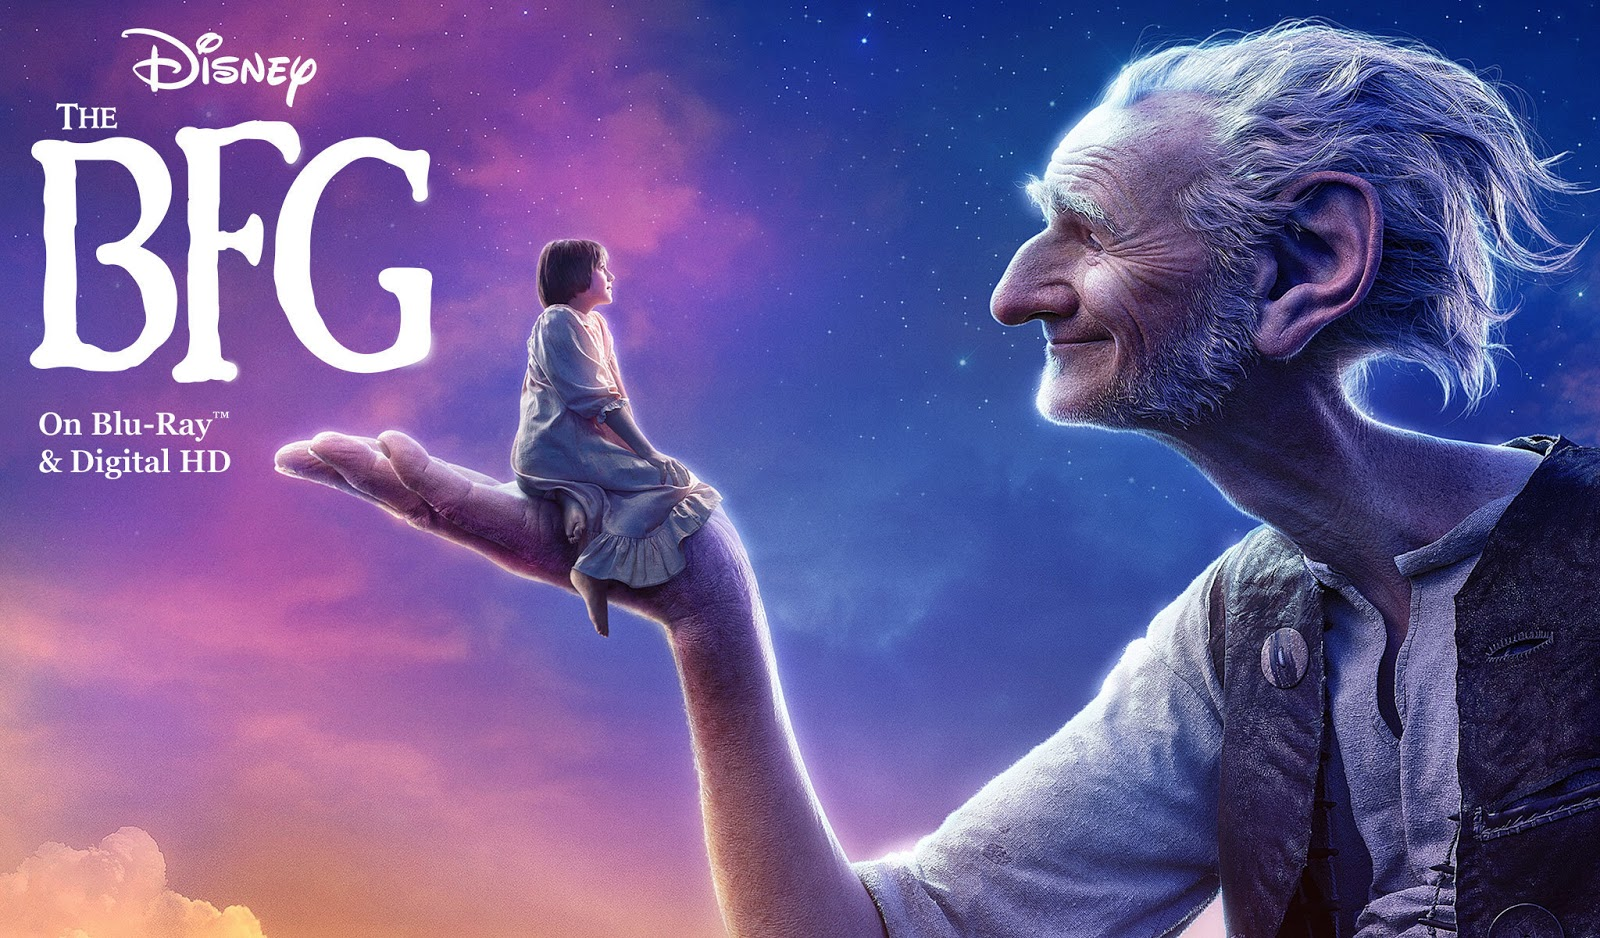 the bfg full movie in hindi (dubbed) download in hd ~ moviemaniyas